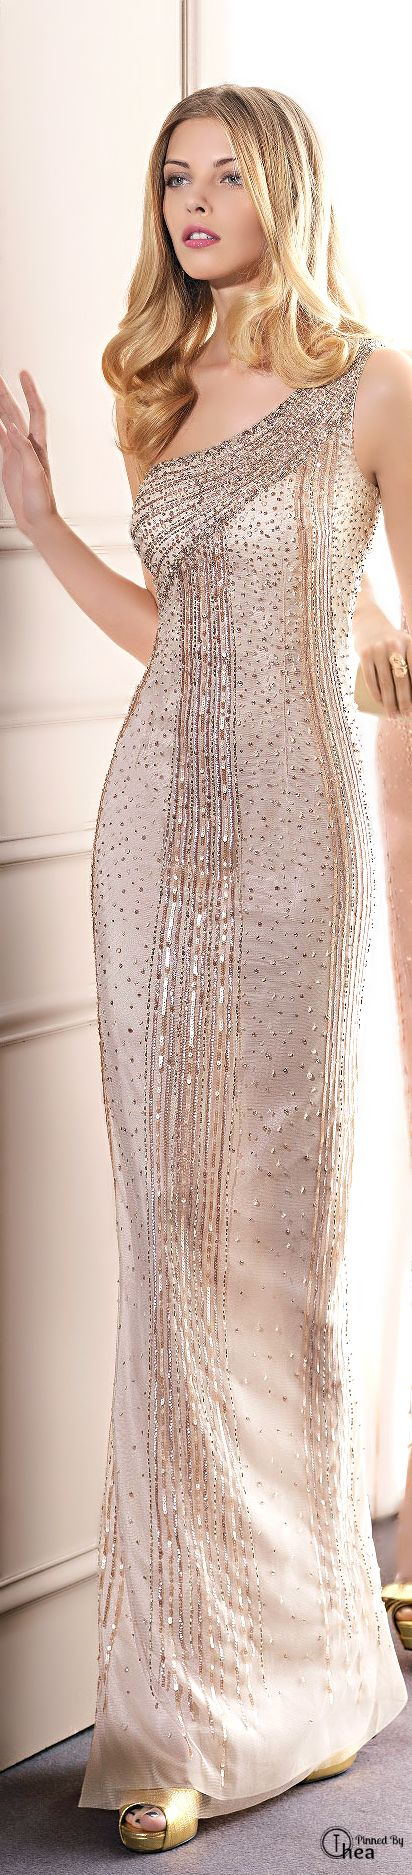 Haute couture dresses prom and women 39 s fashion on pinterest for Women s haute couture clothing